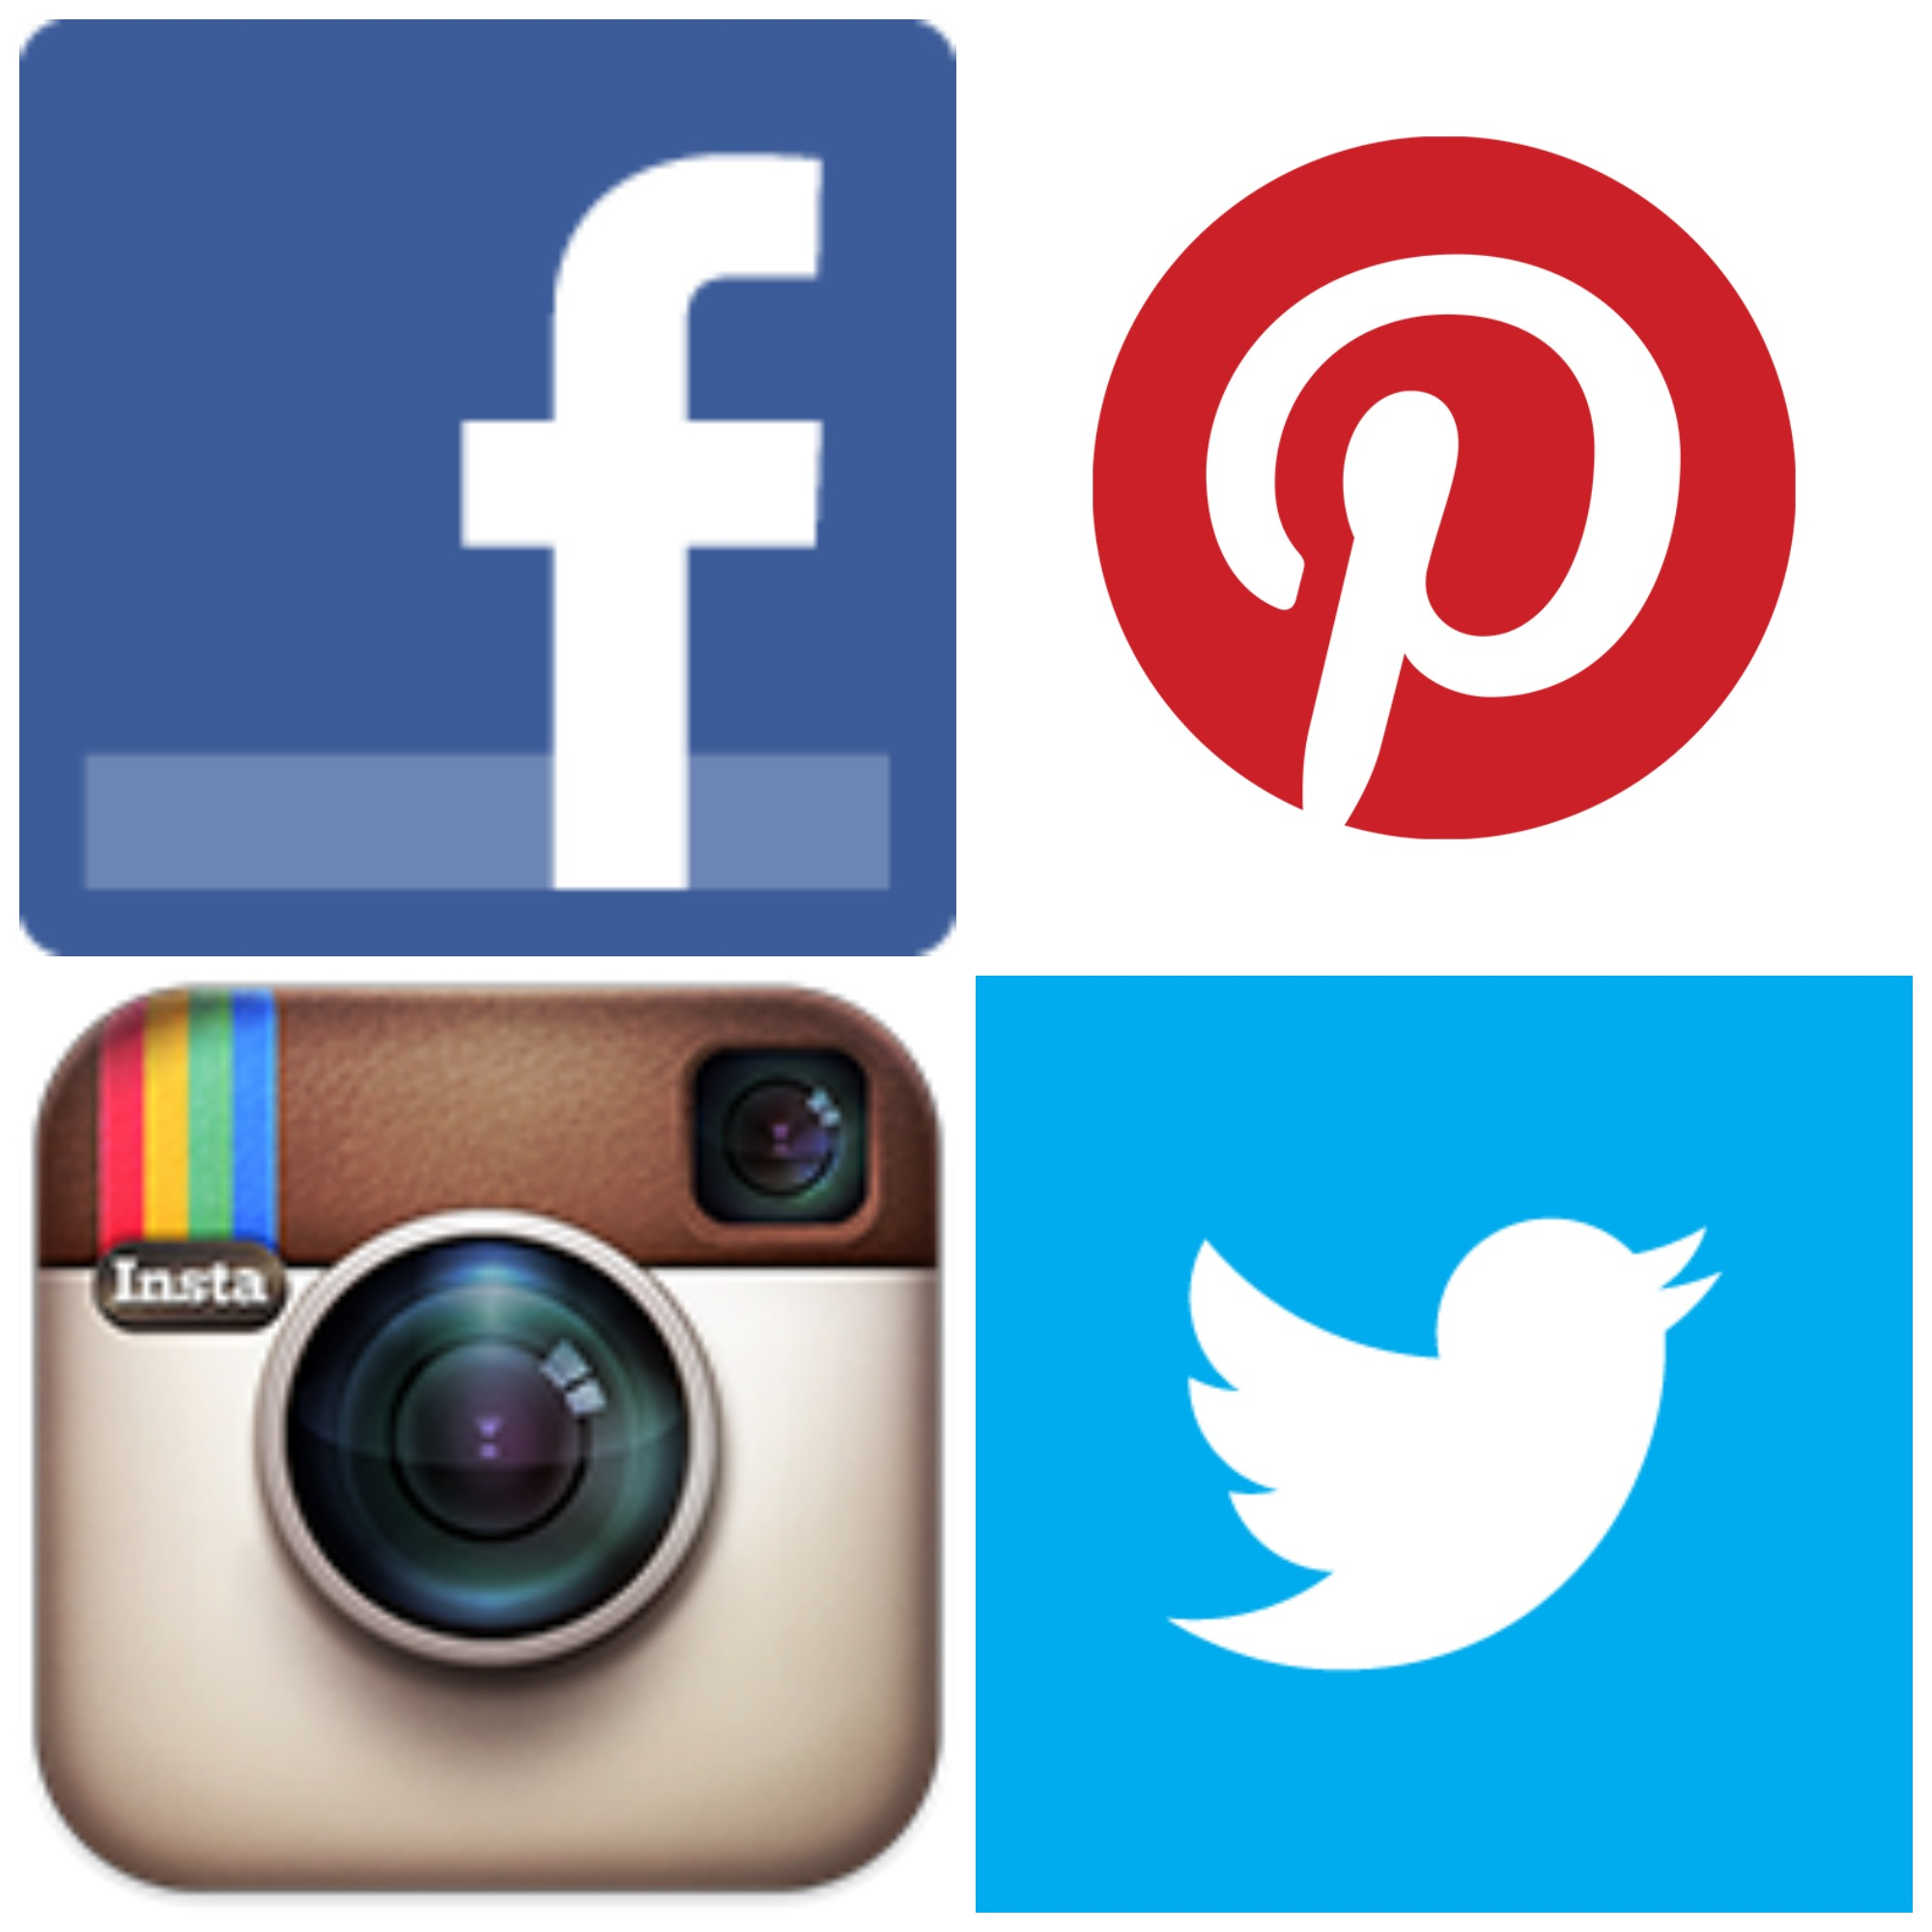 Facebook twitter instagram clipart clipart stock Icon clipart facebook and instagram - ClipartFest clipart stock